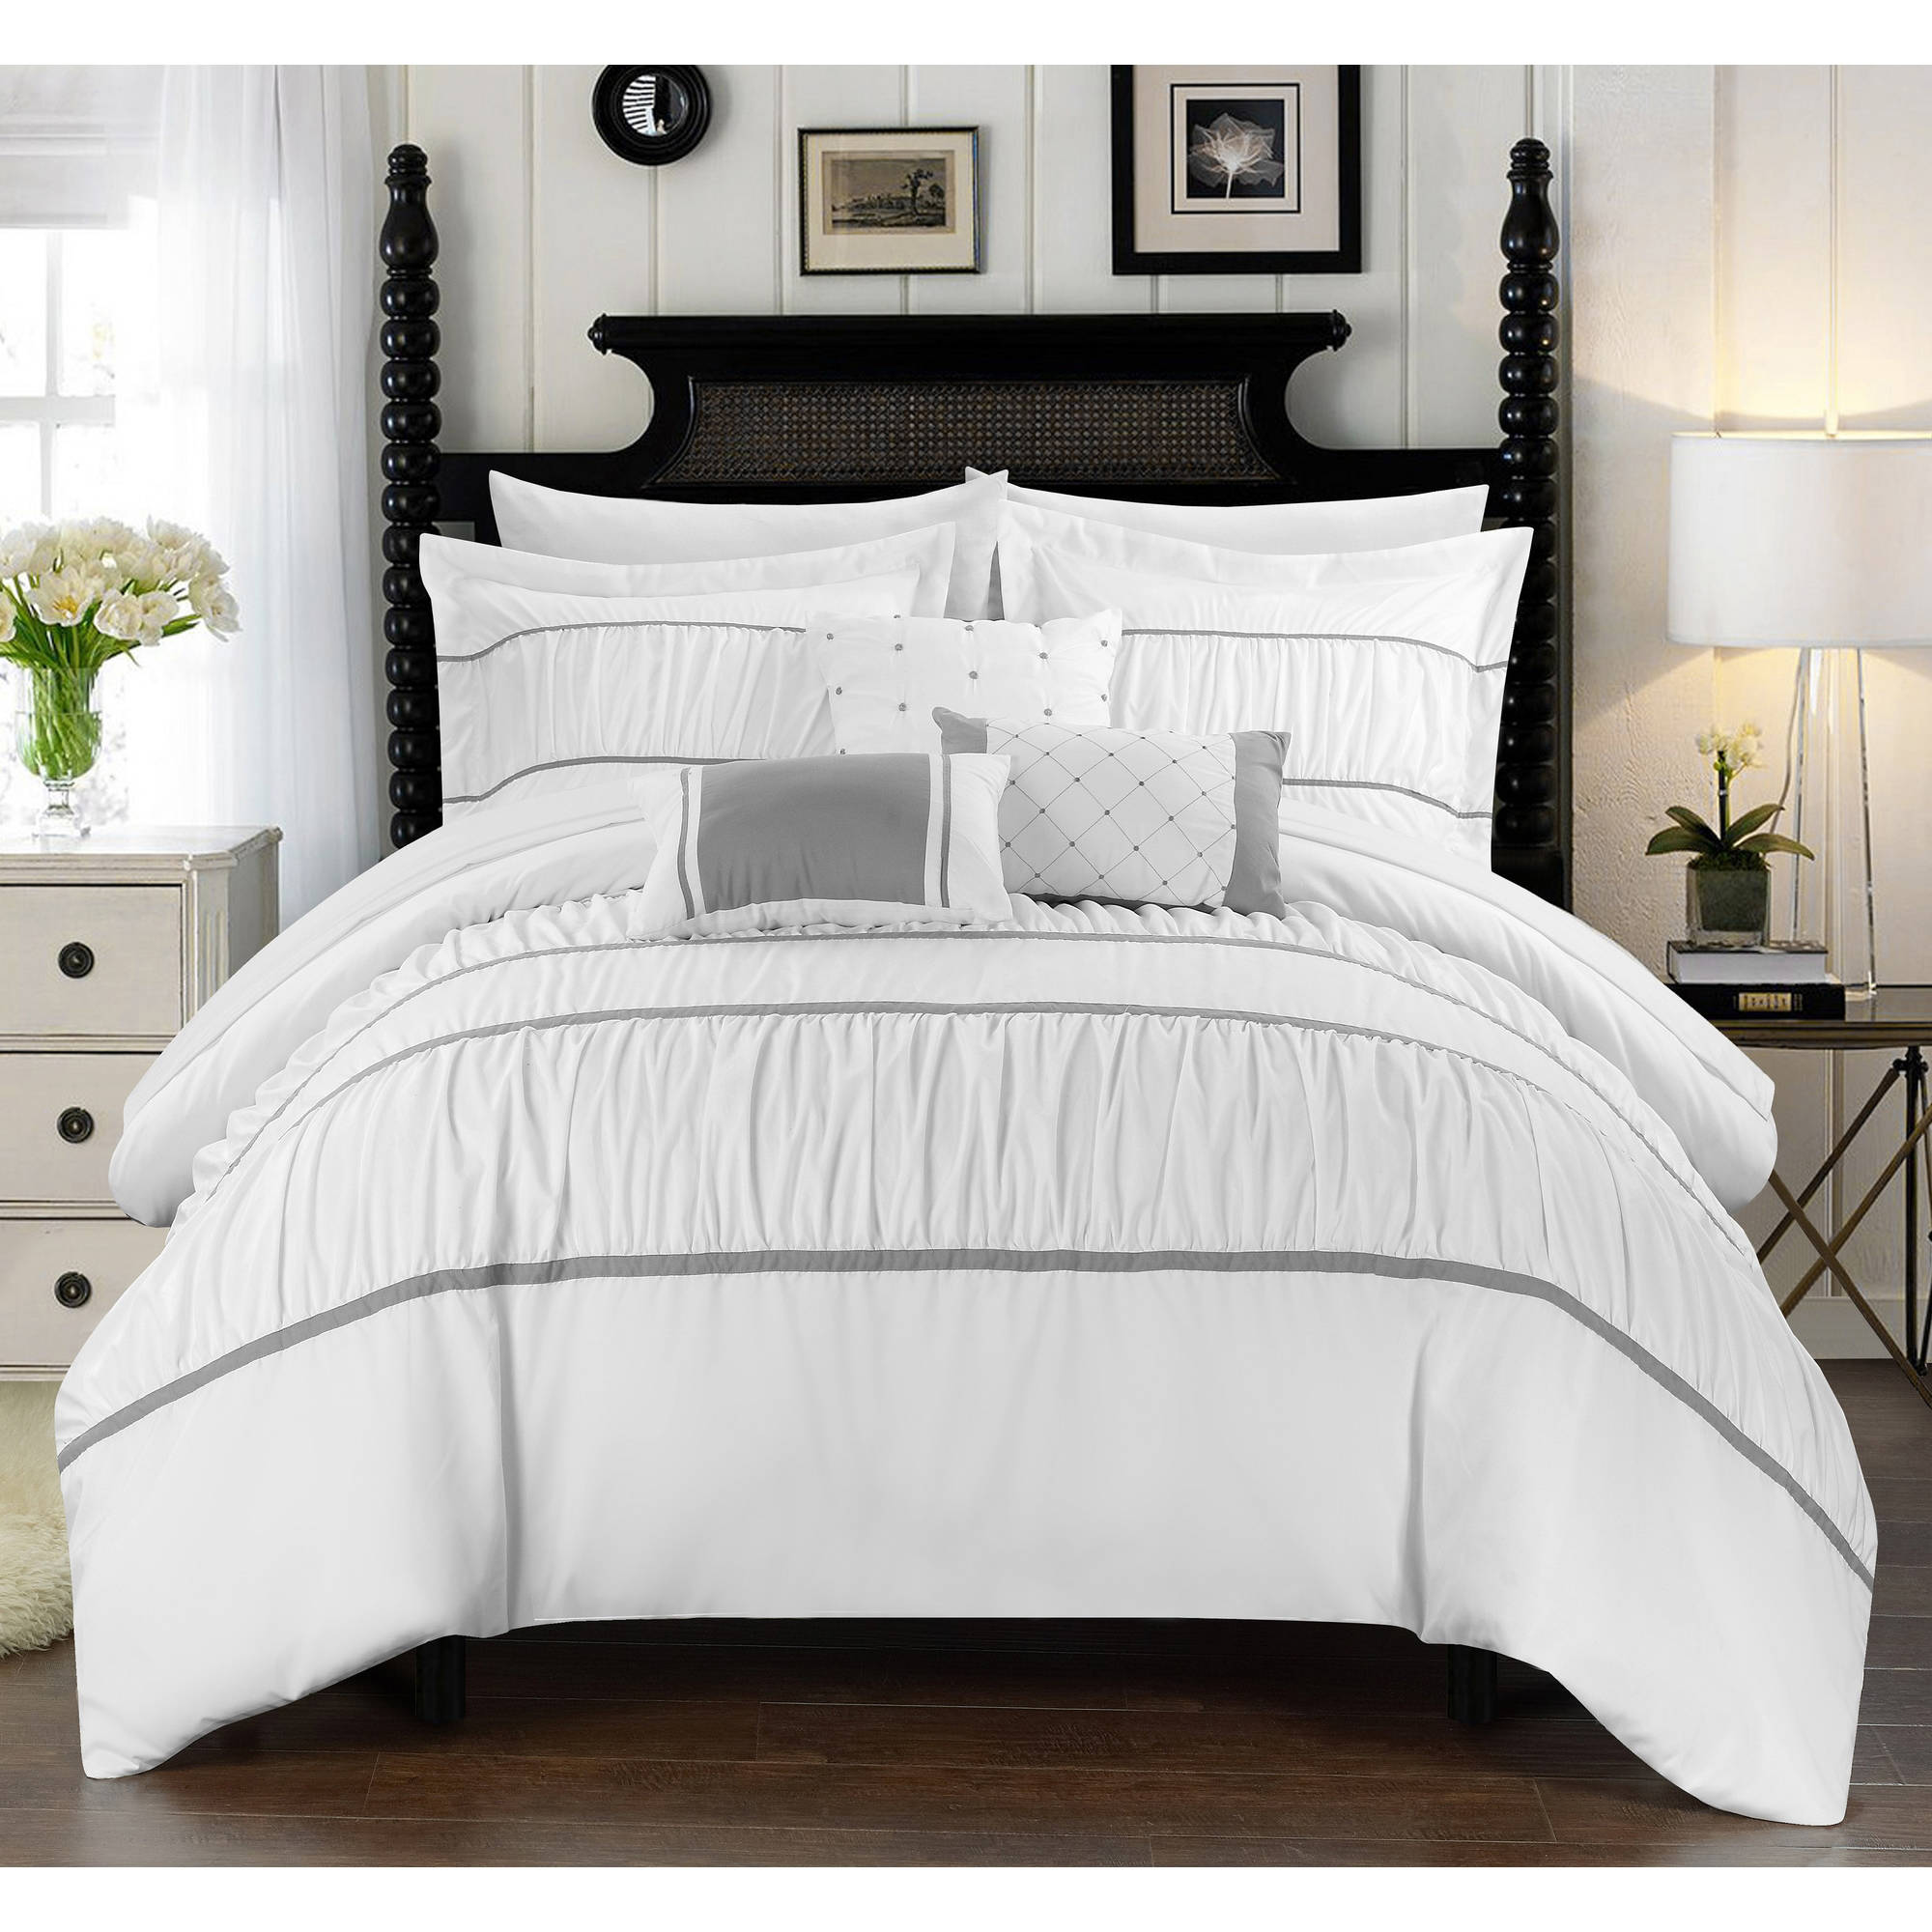 Wanda Piece Wanda Bed in a Bag Bedding forter Set Walmart